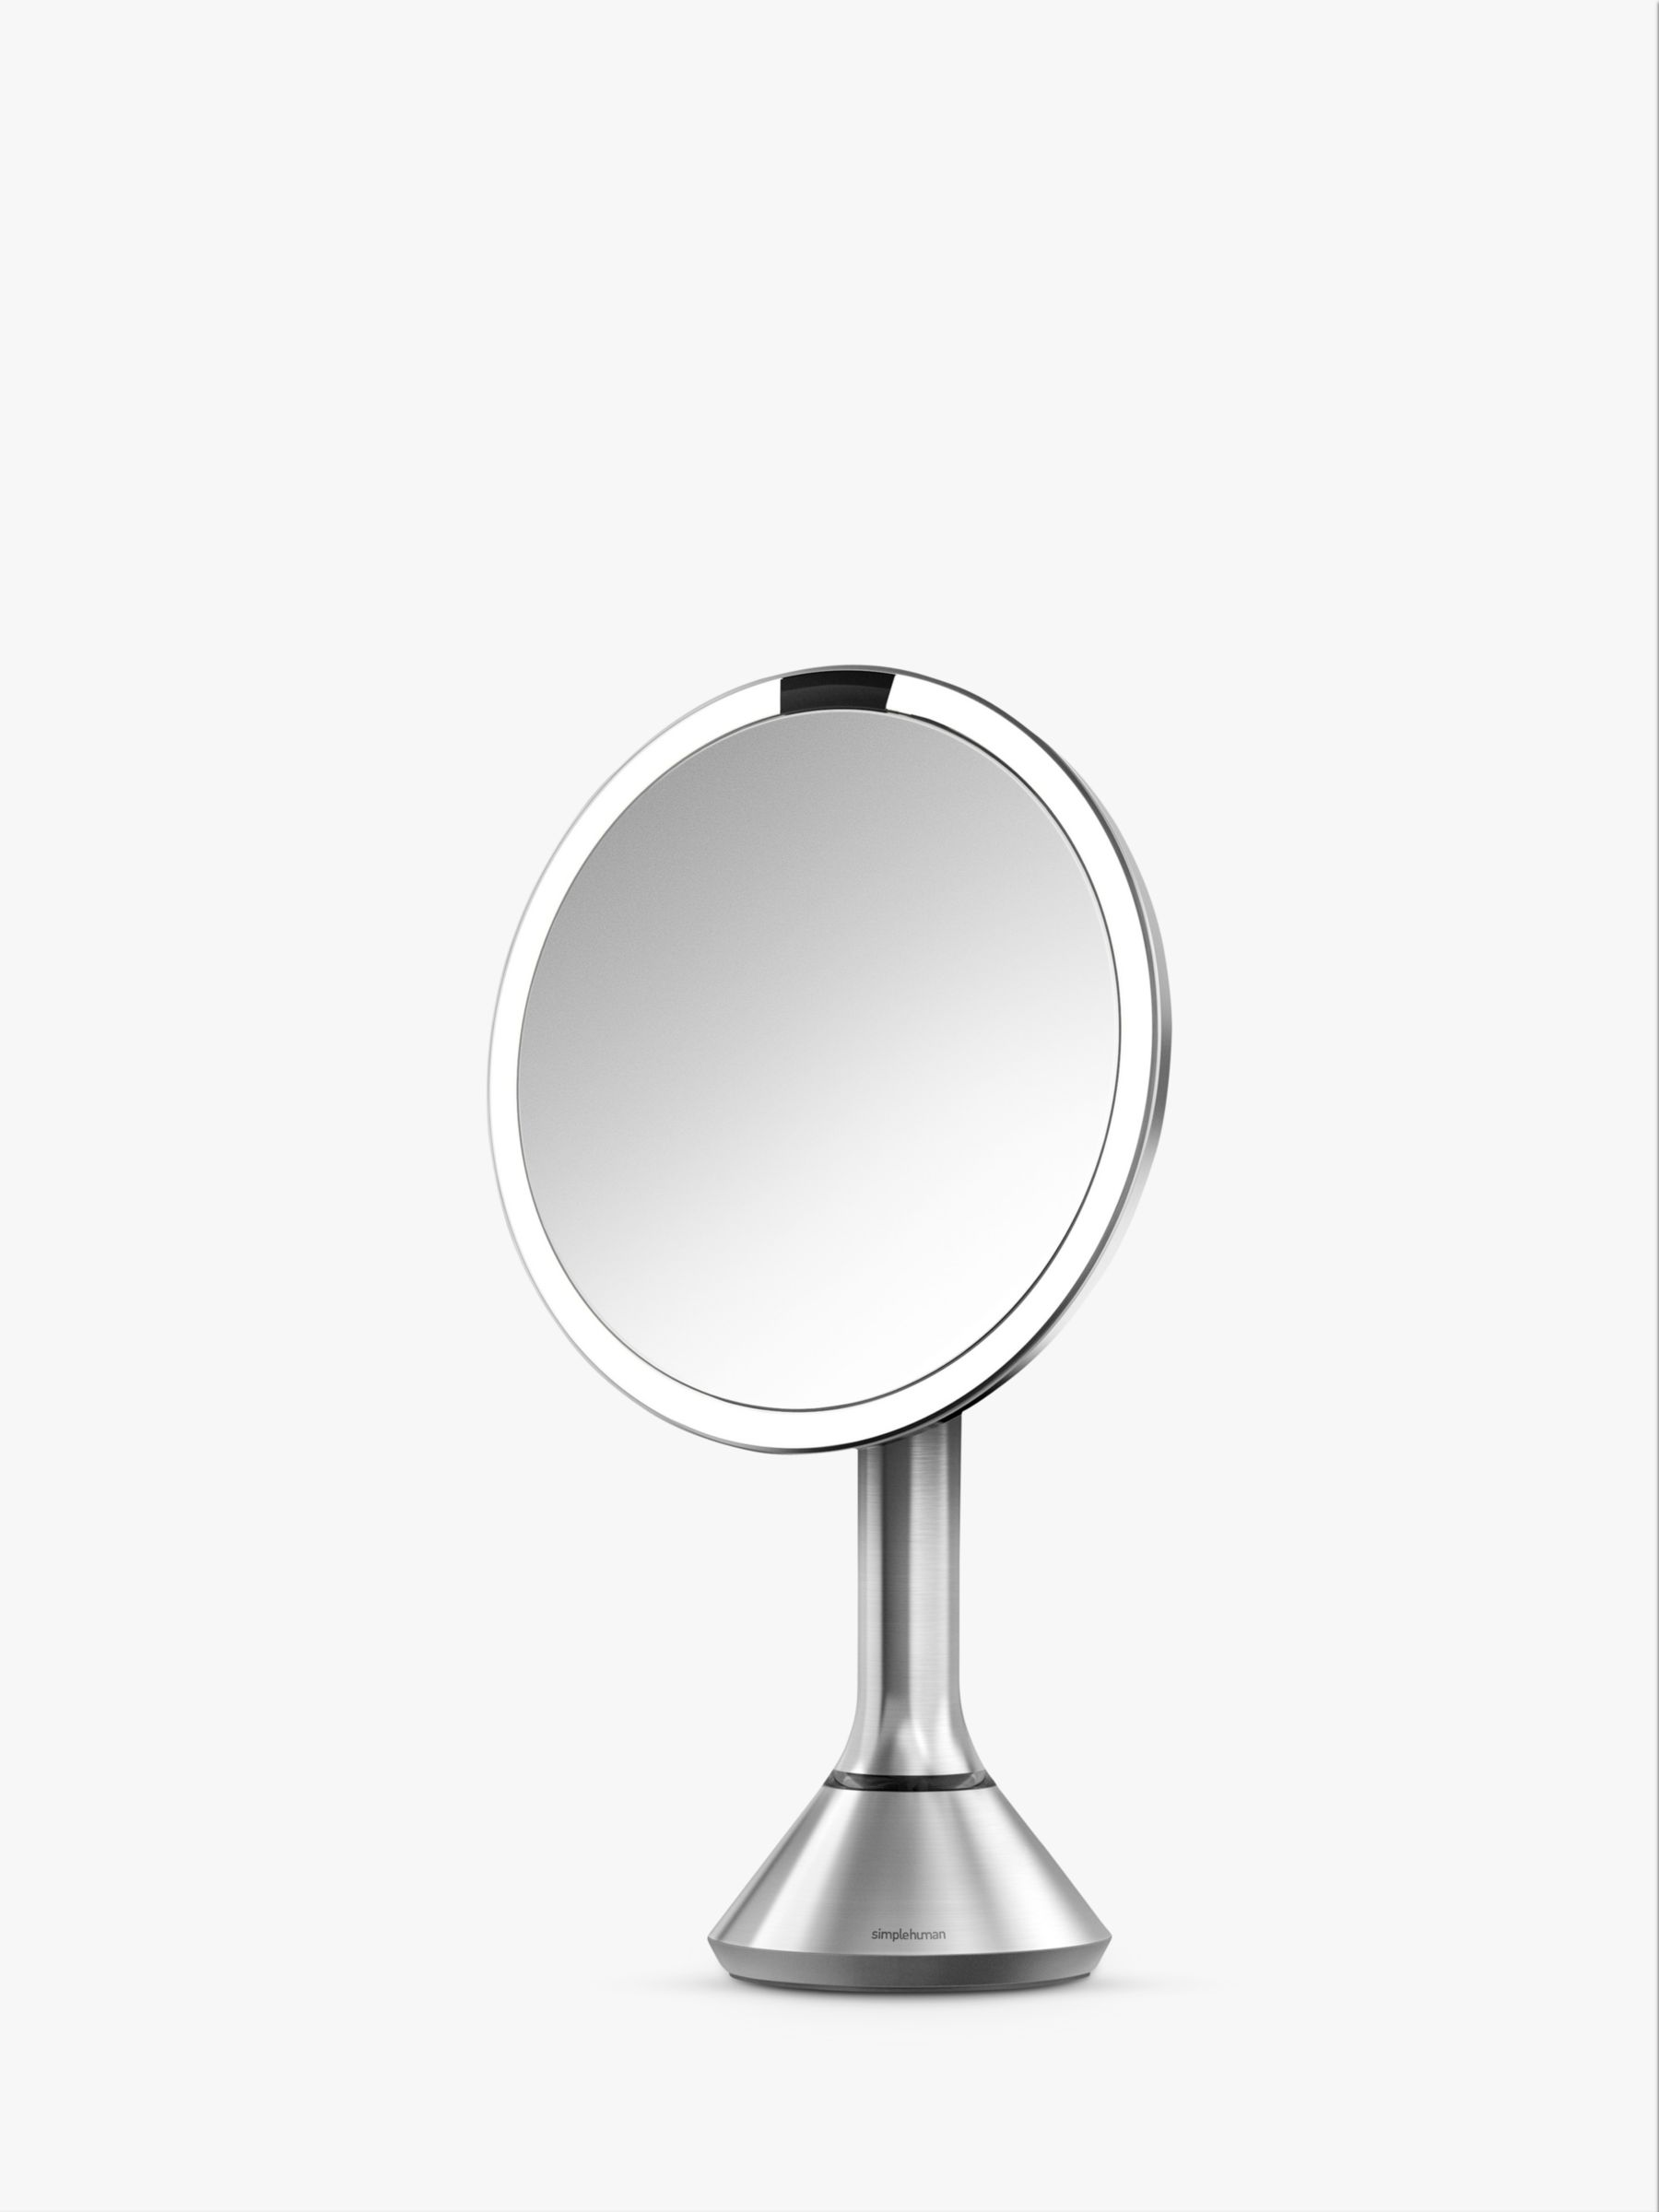 Simplehuman simplehuman Sensor Freestanding Mirror with Touch Control Brightness